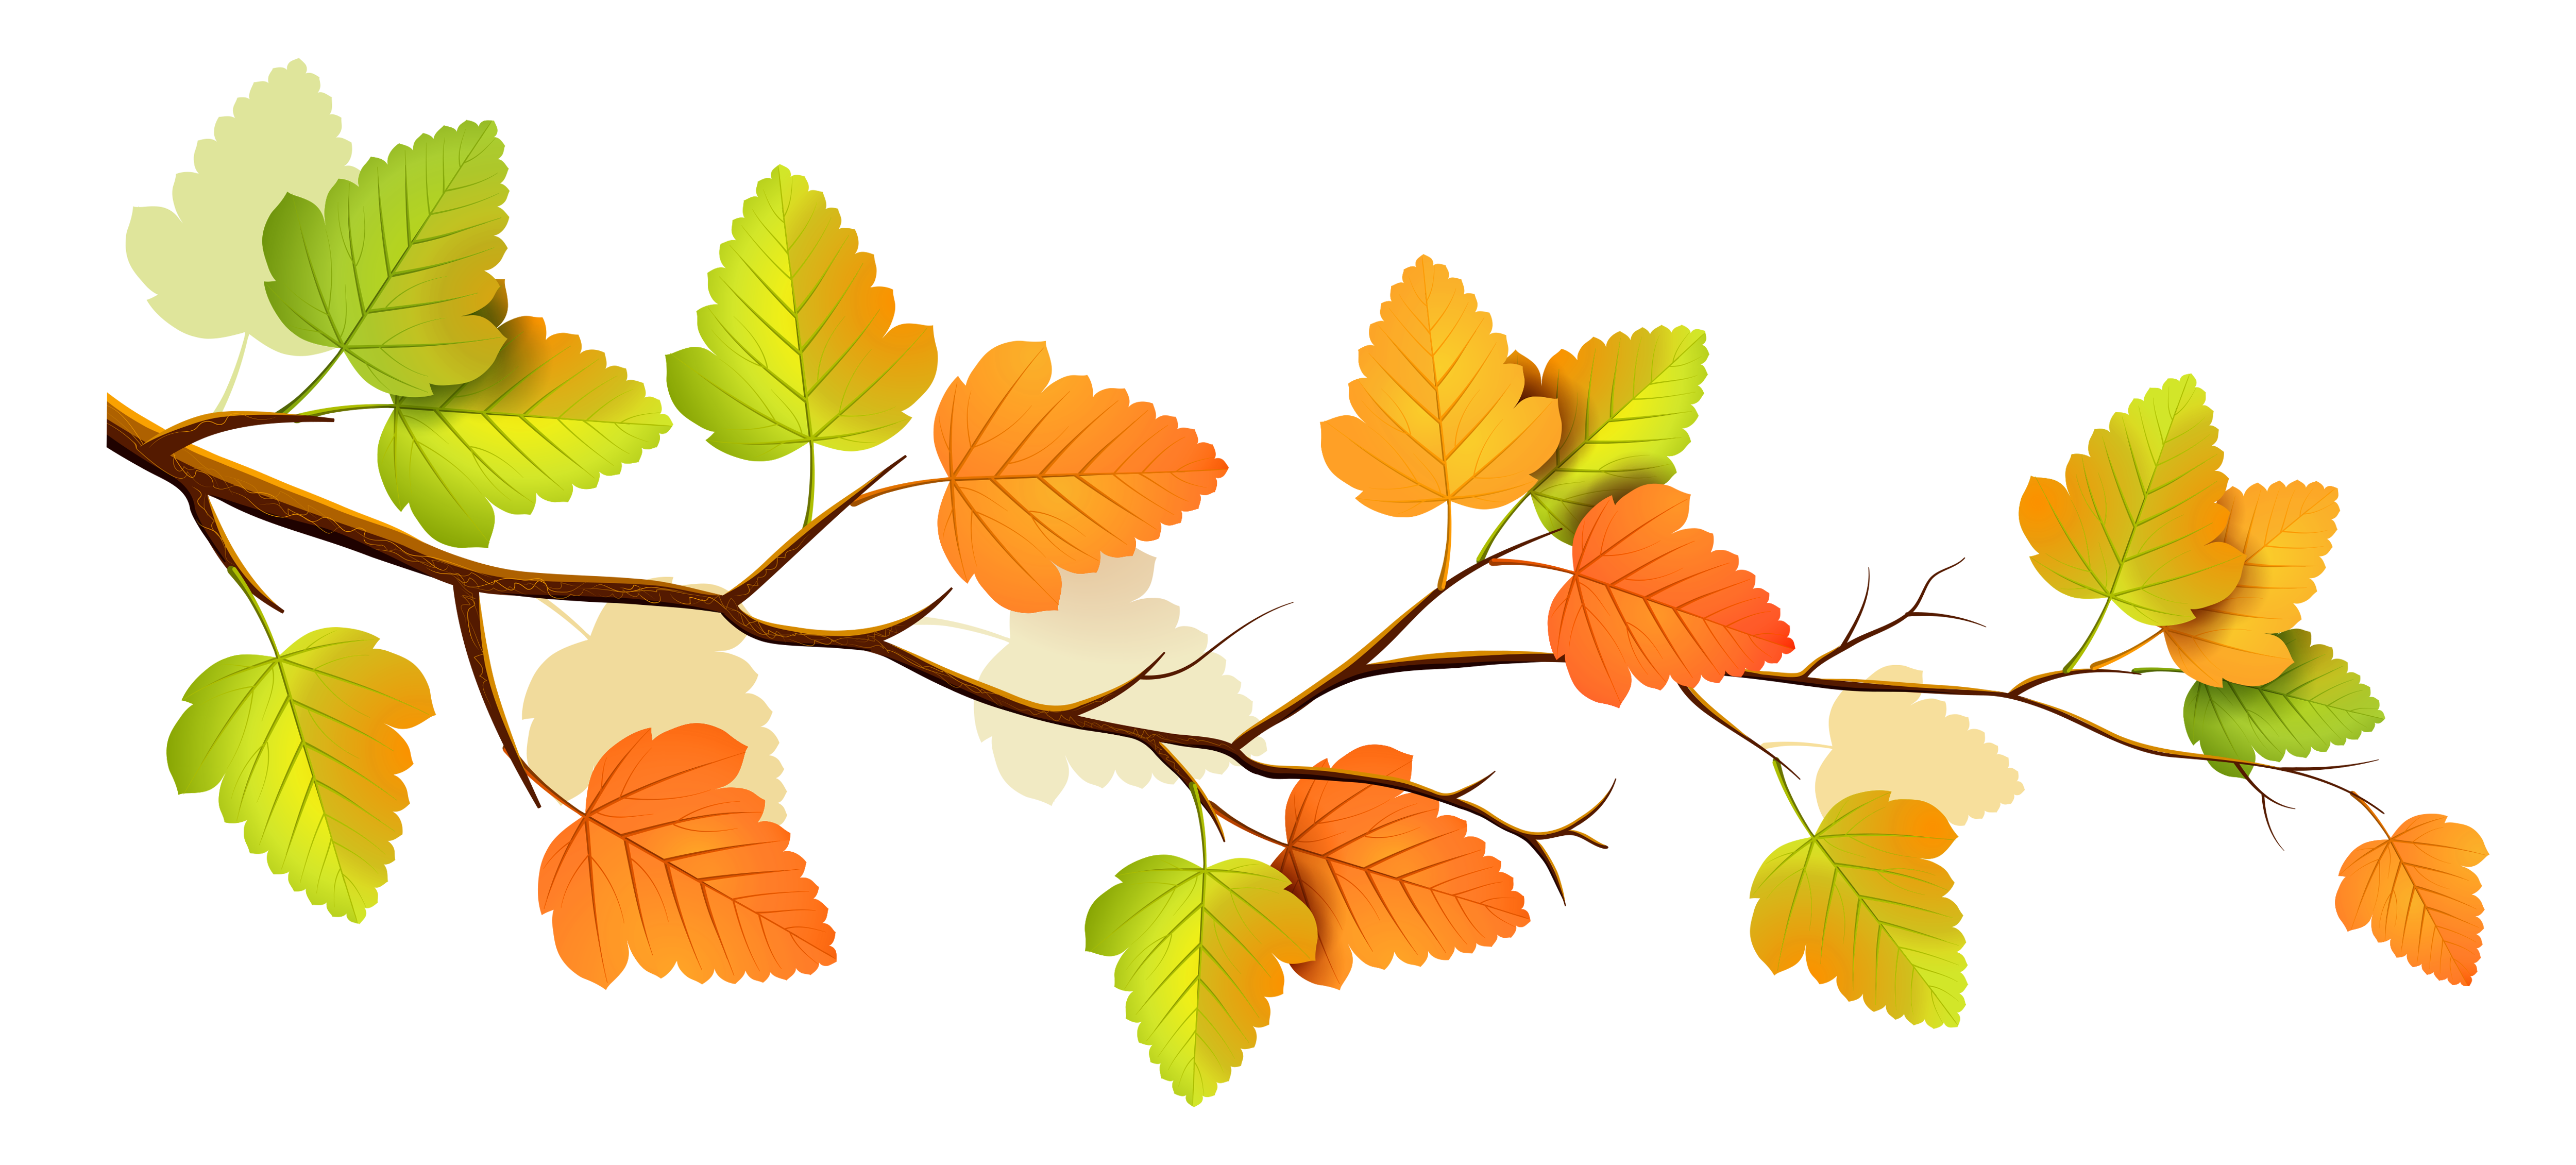 5000x2261 Images Of Fall Leaf Png Border